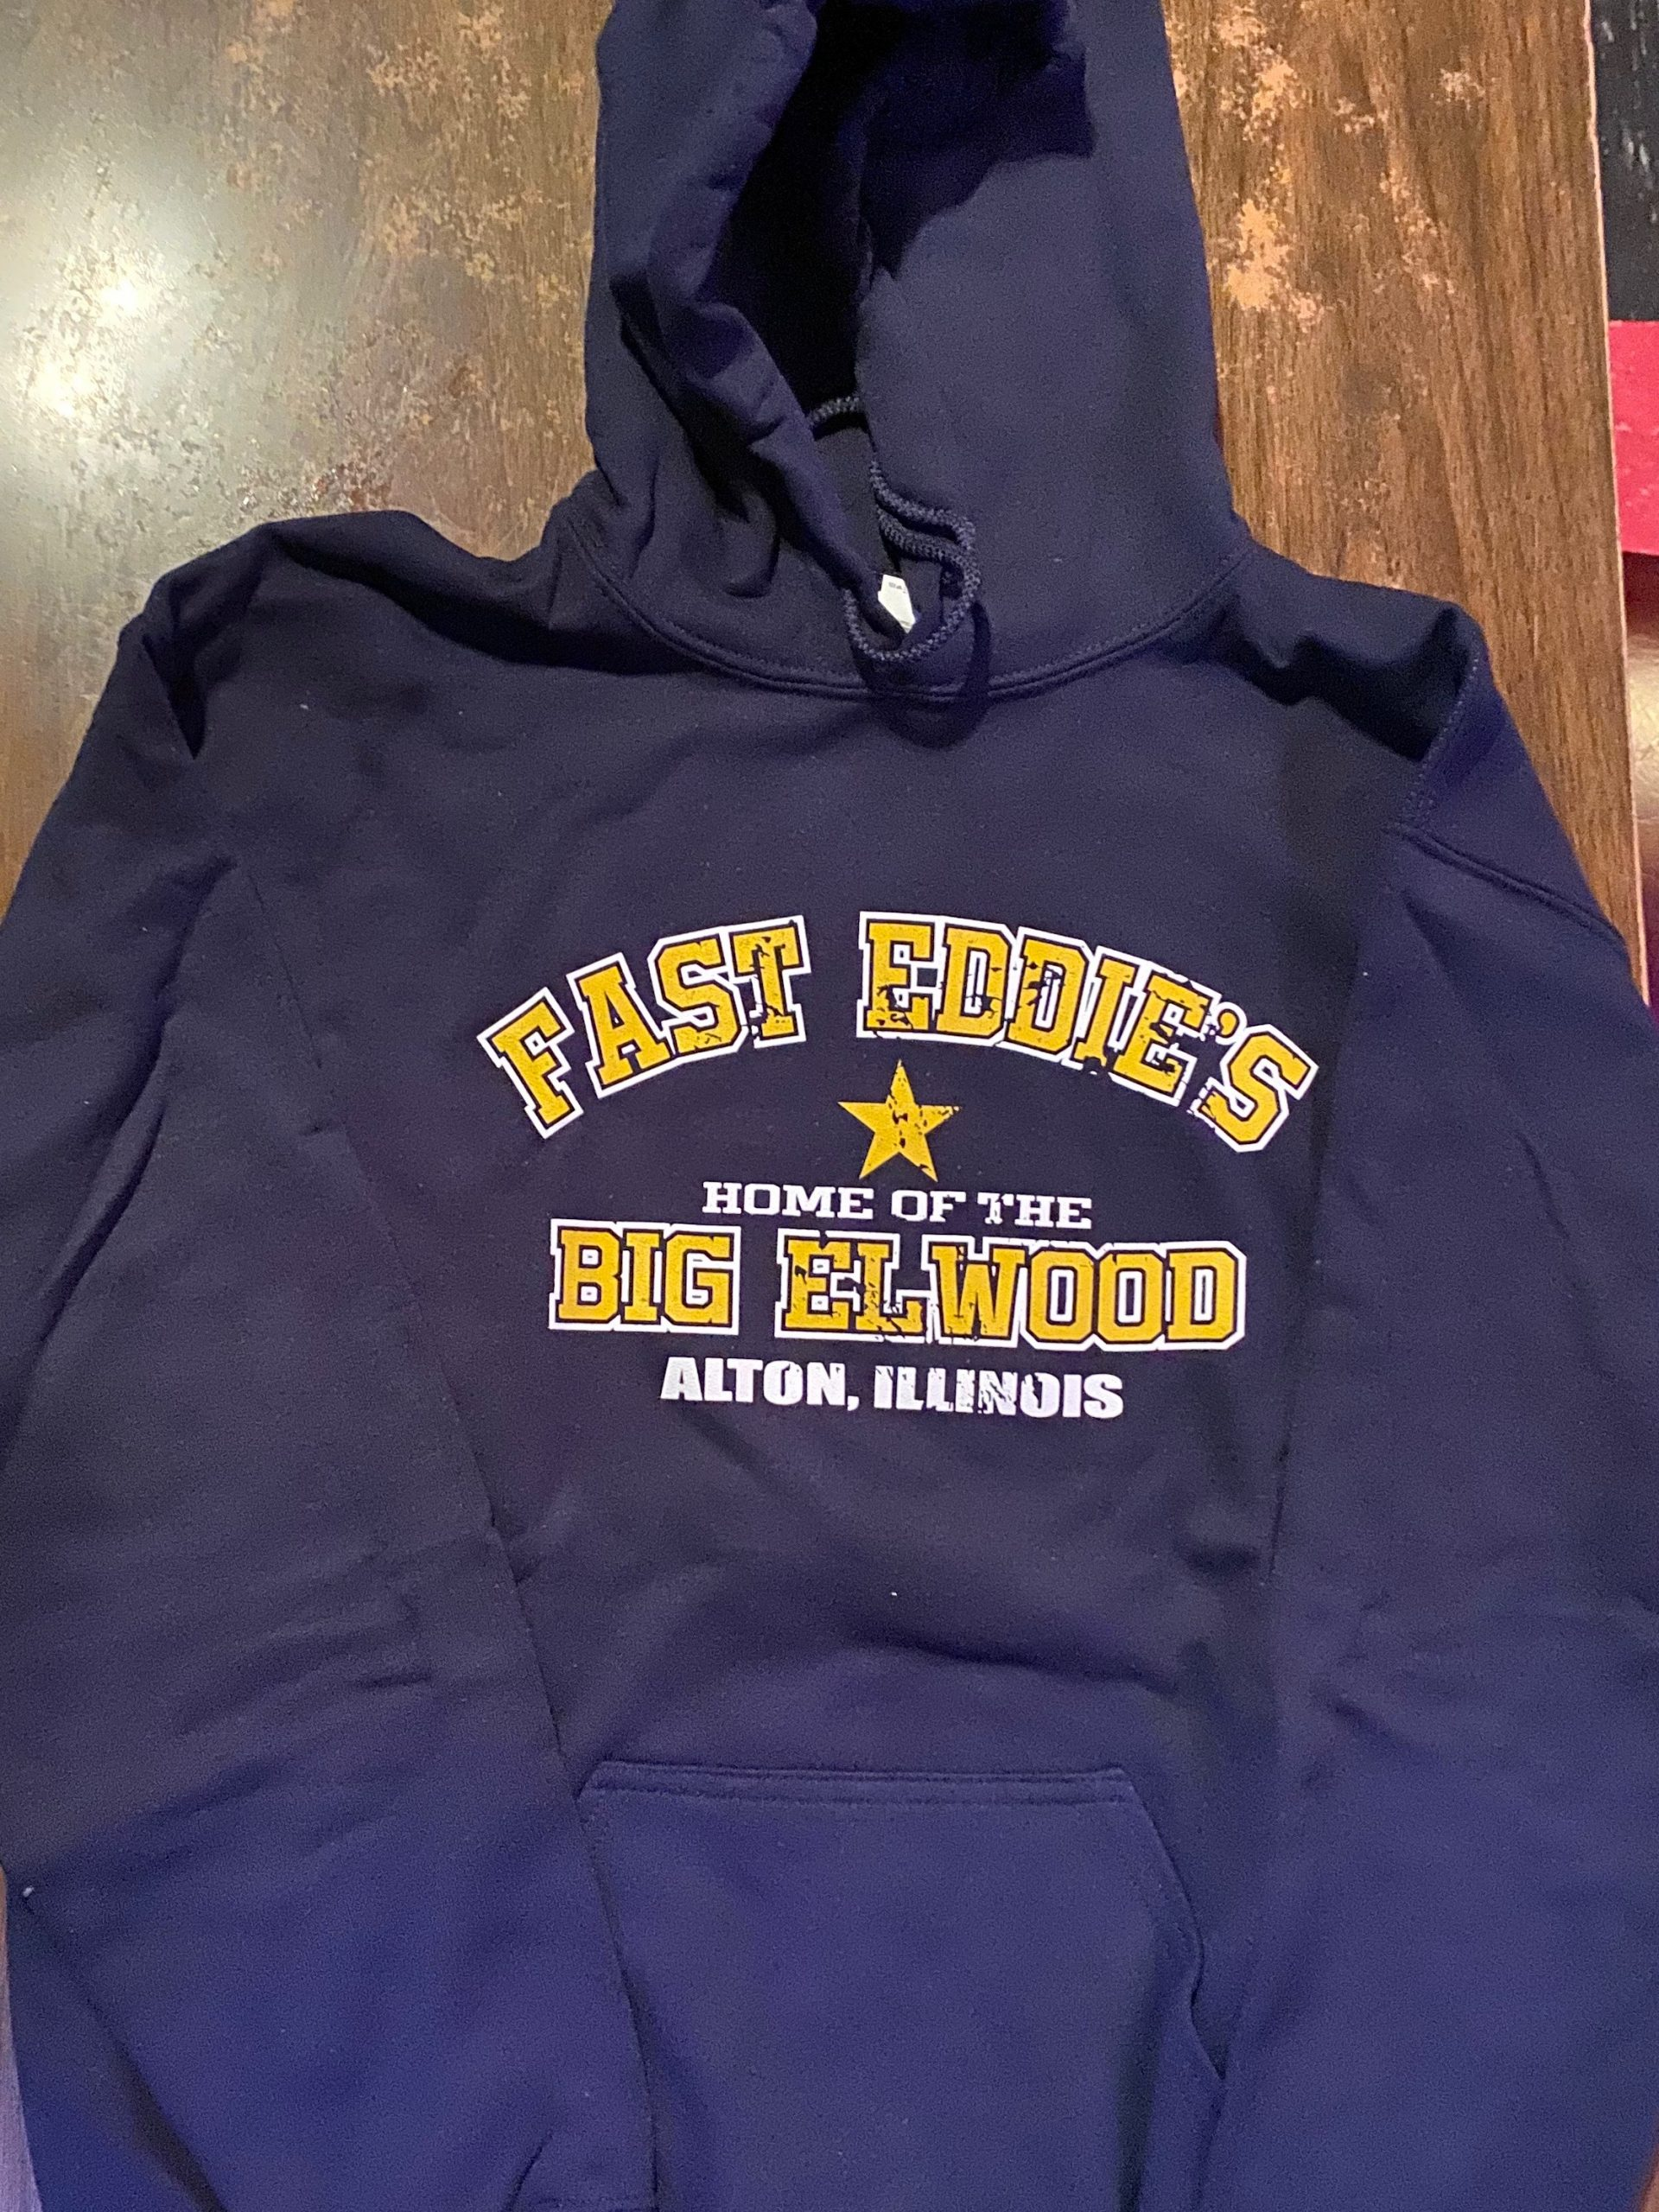 home-of-the-big-elwood-navy-hooded-sweatshirt